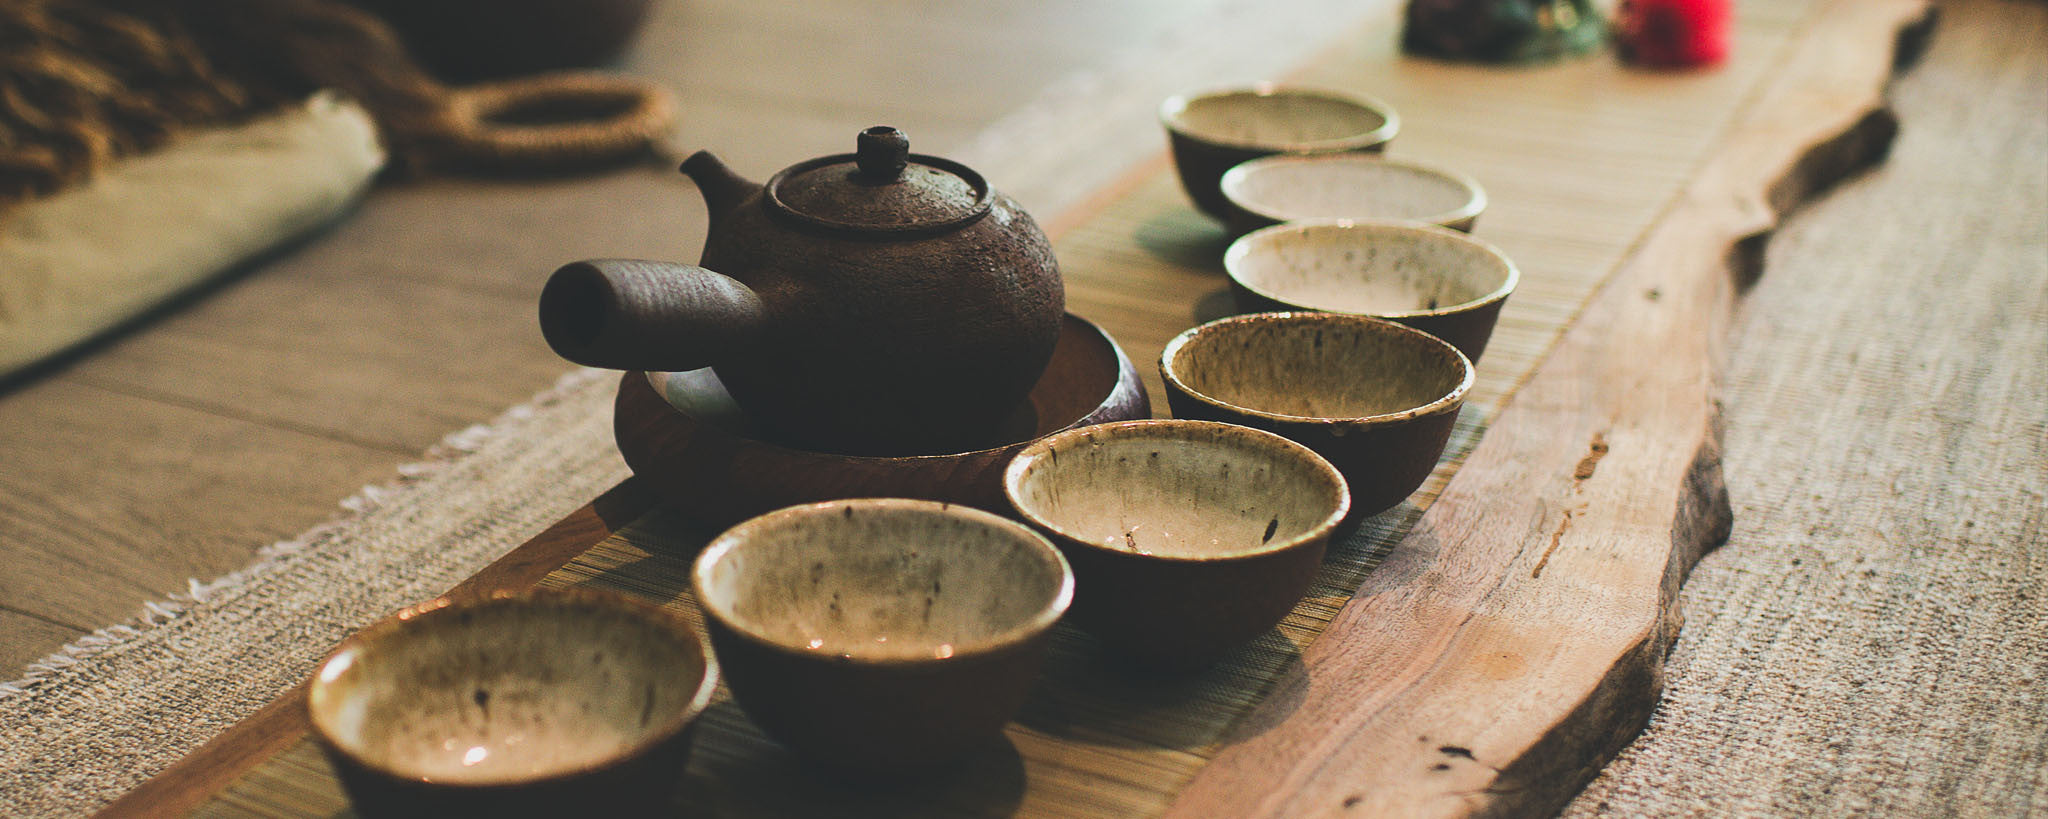 rare and living teas fine pots and wares a space to be brewed